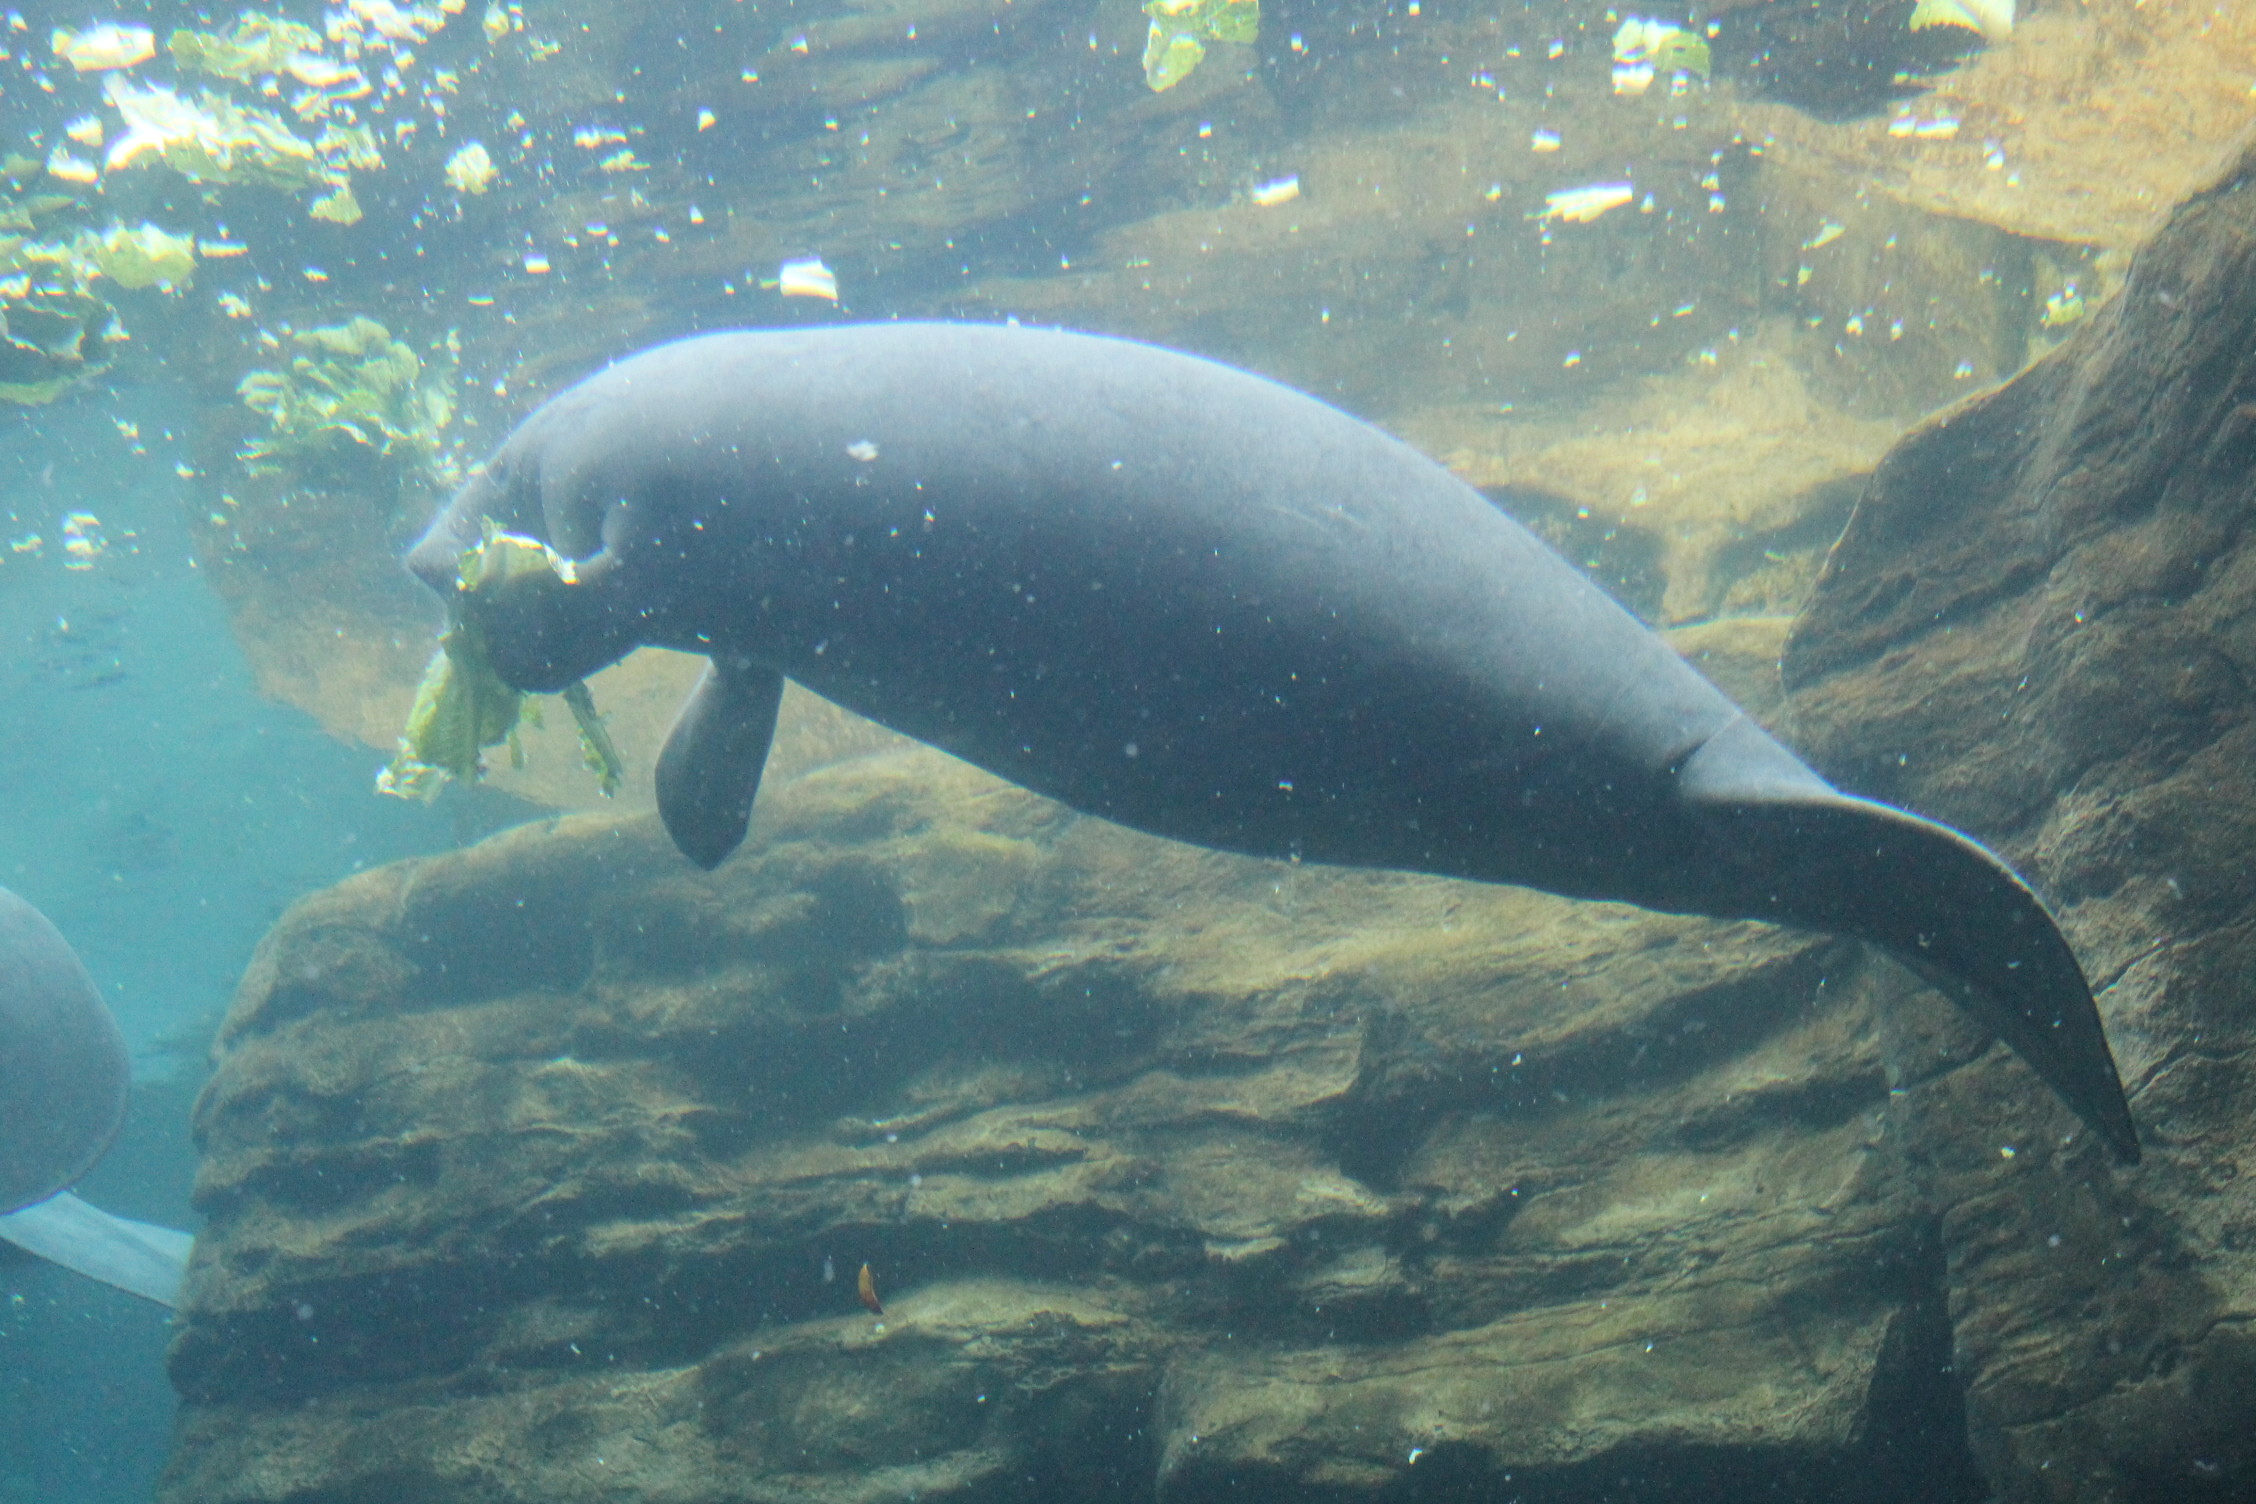 Snorkel in Crystal River and look for the wild manatees